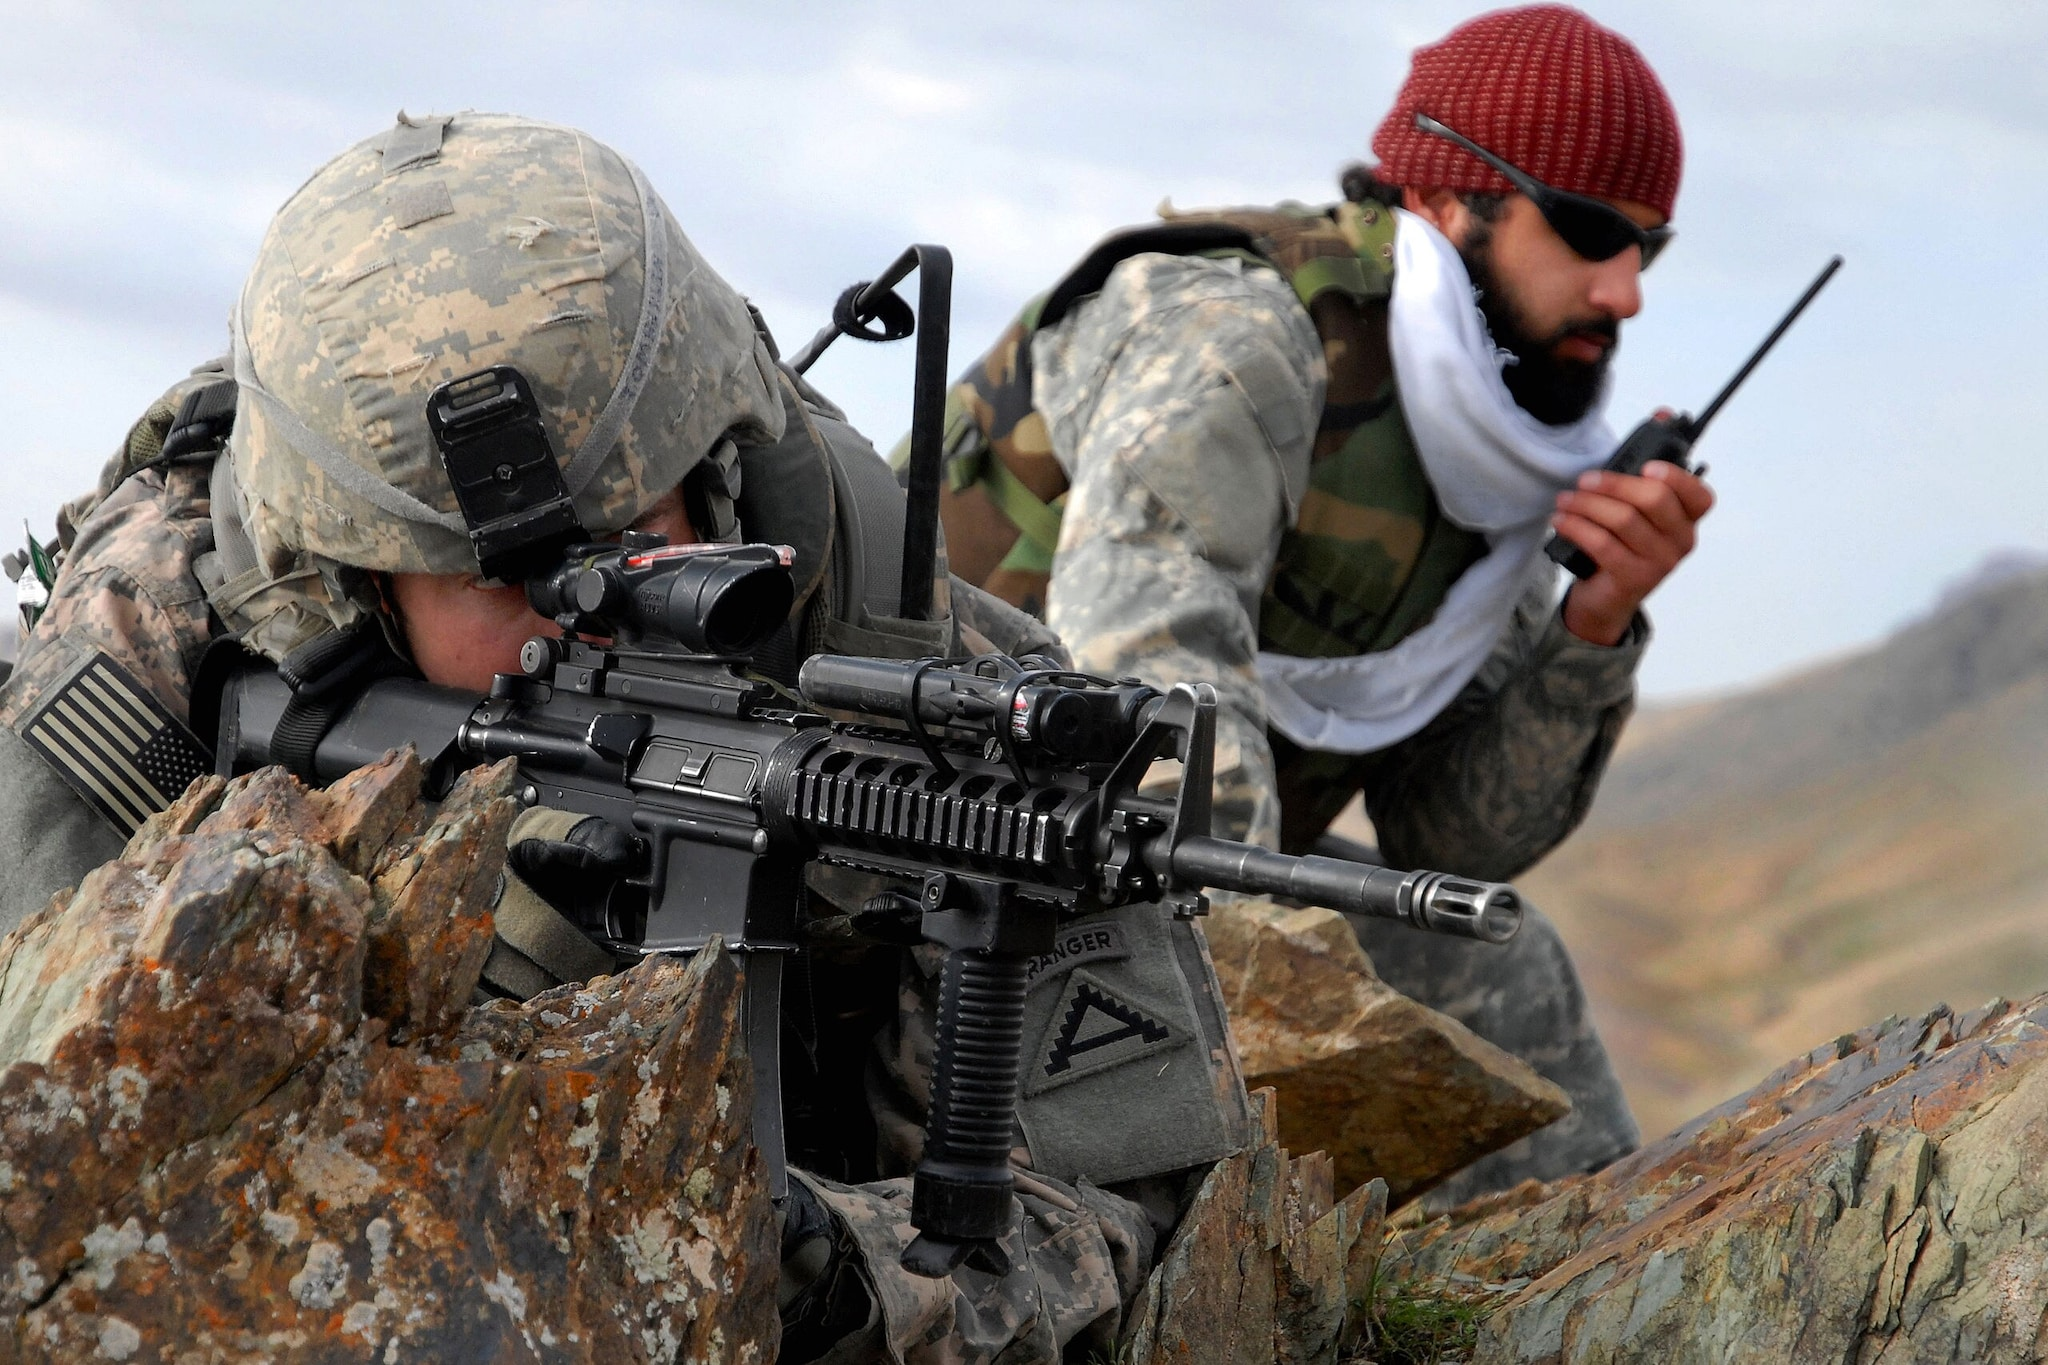 U.S. Army 1st Lt. Jared Tomberlin, left, and an interpreter pull security on top of a mountain ridge during a reconnaissance mission near Forward Operating Base Lane in the Zabul province of Afghanistan Feb. 28, 2009. Tomberlin is assigned to Bravo Company, 1st Battalion, 4th Infantry Regiment. (Photo: department of Defense)